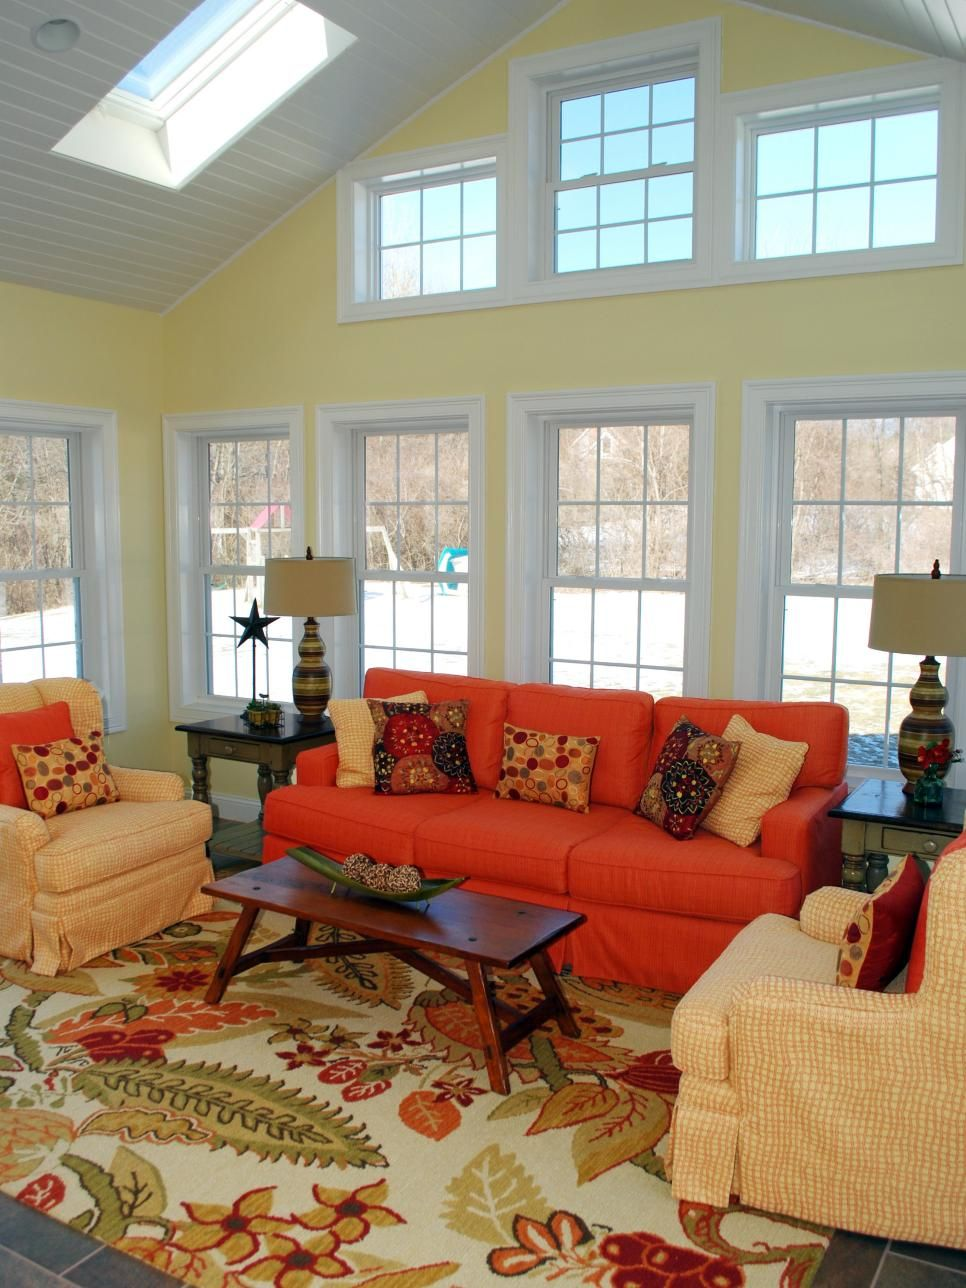 Rich vibrant hues and dark wood furnishings emit visual warmth in this country style living room pale yellow walls tone down the bold sofa and reflect the